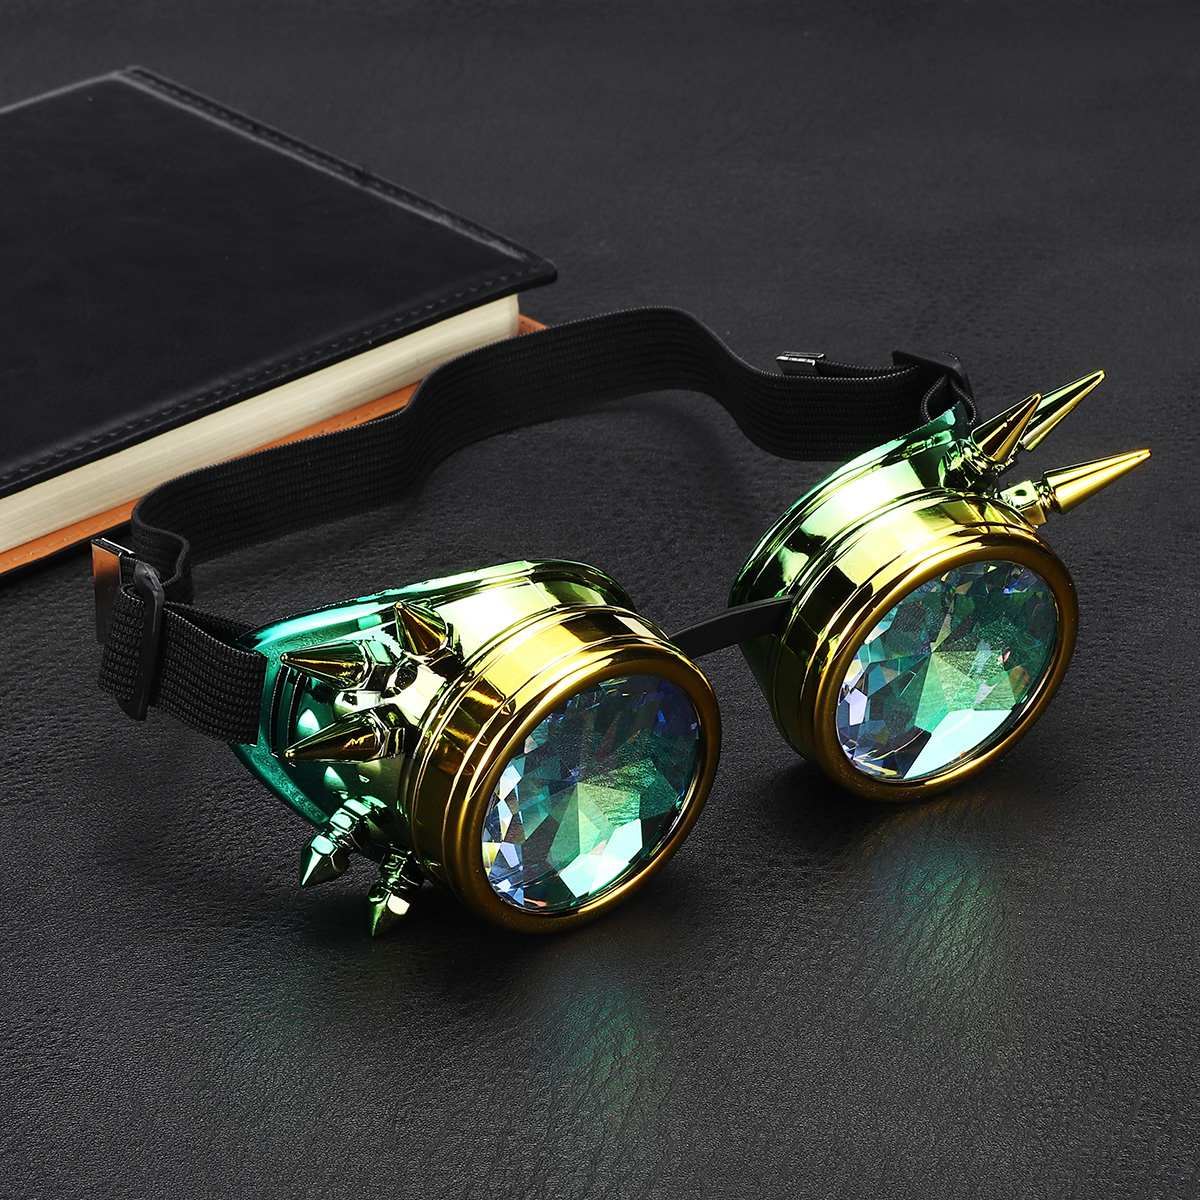 Retro Kaleidoscope Goggles Welding Rivet Punk Gothic Rave Halloween Rainbow Glasses EDM Sunglasses Diffracted <font><b>Lens</b></font> image